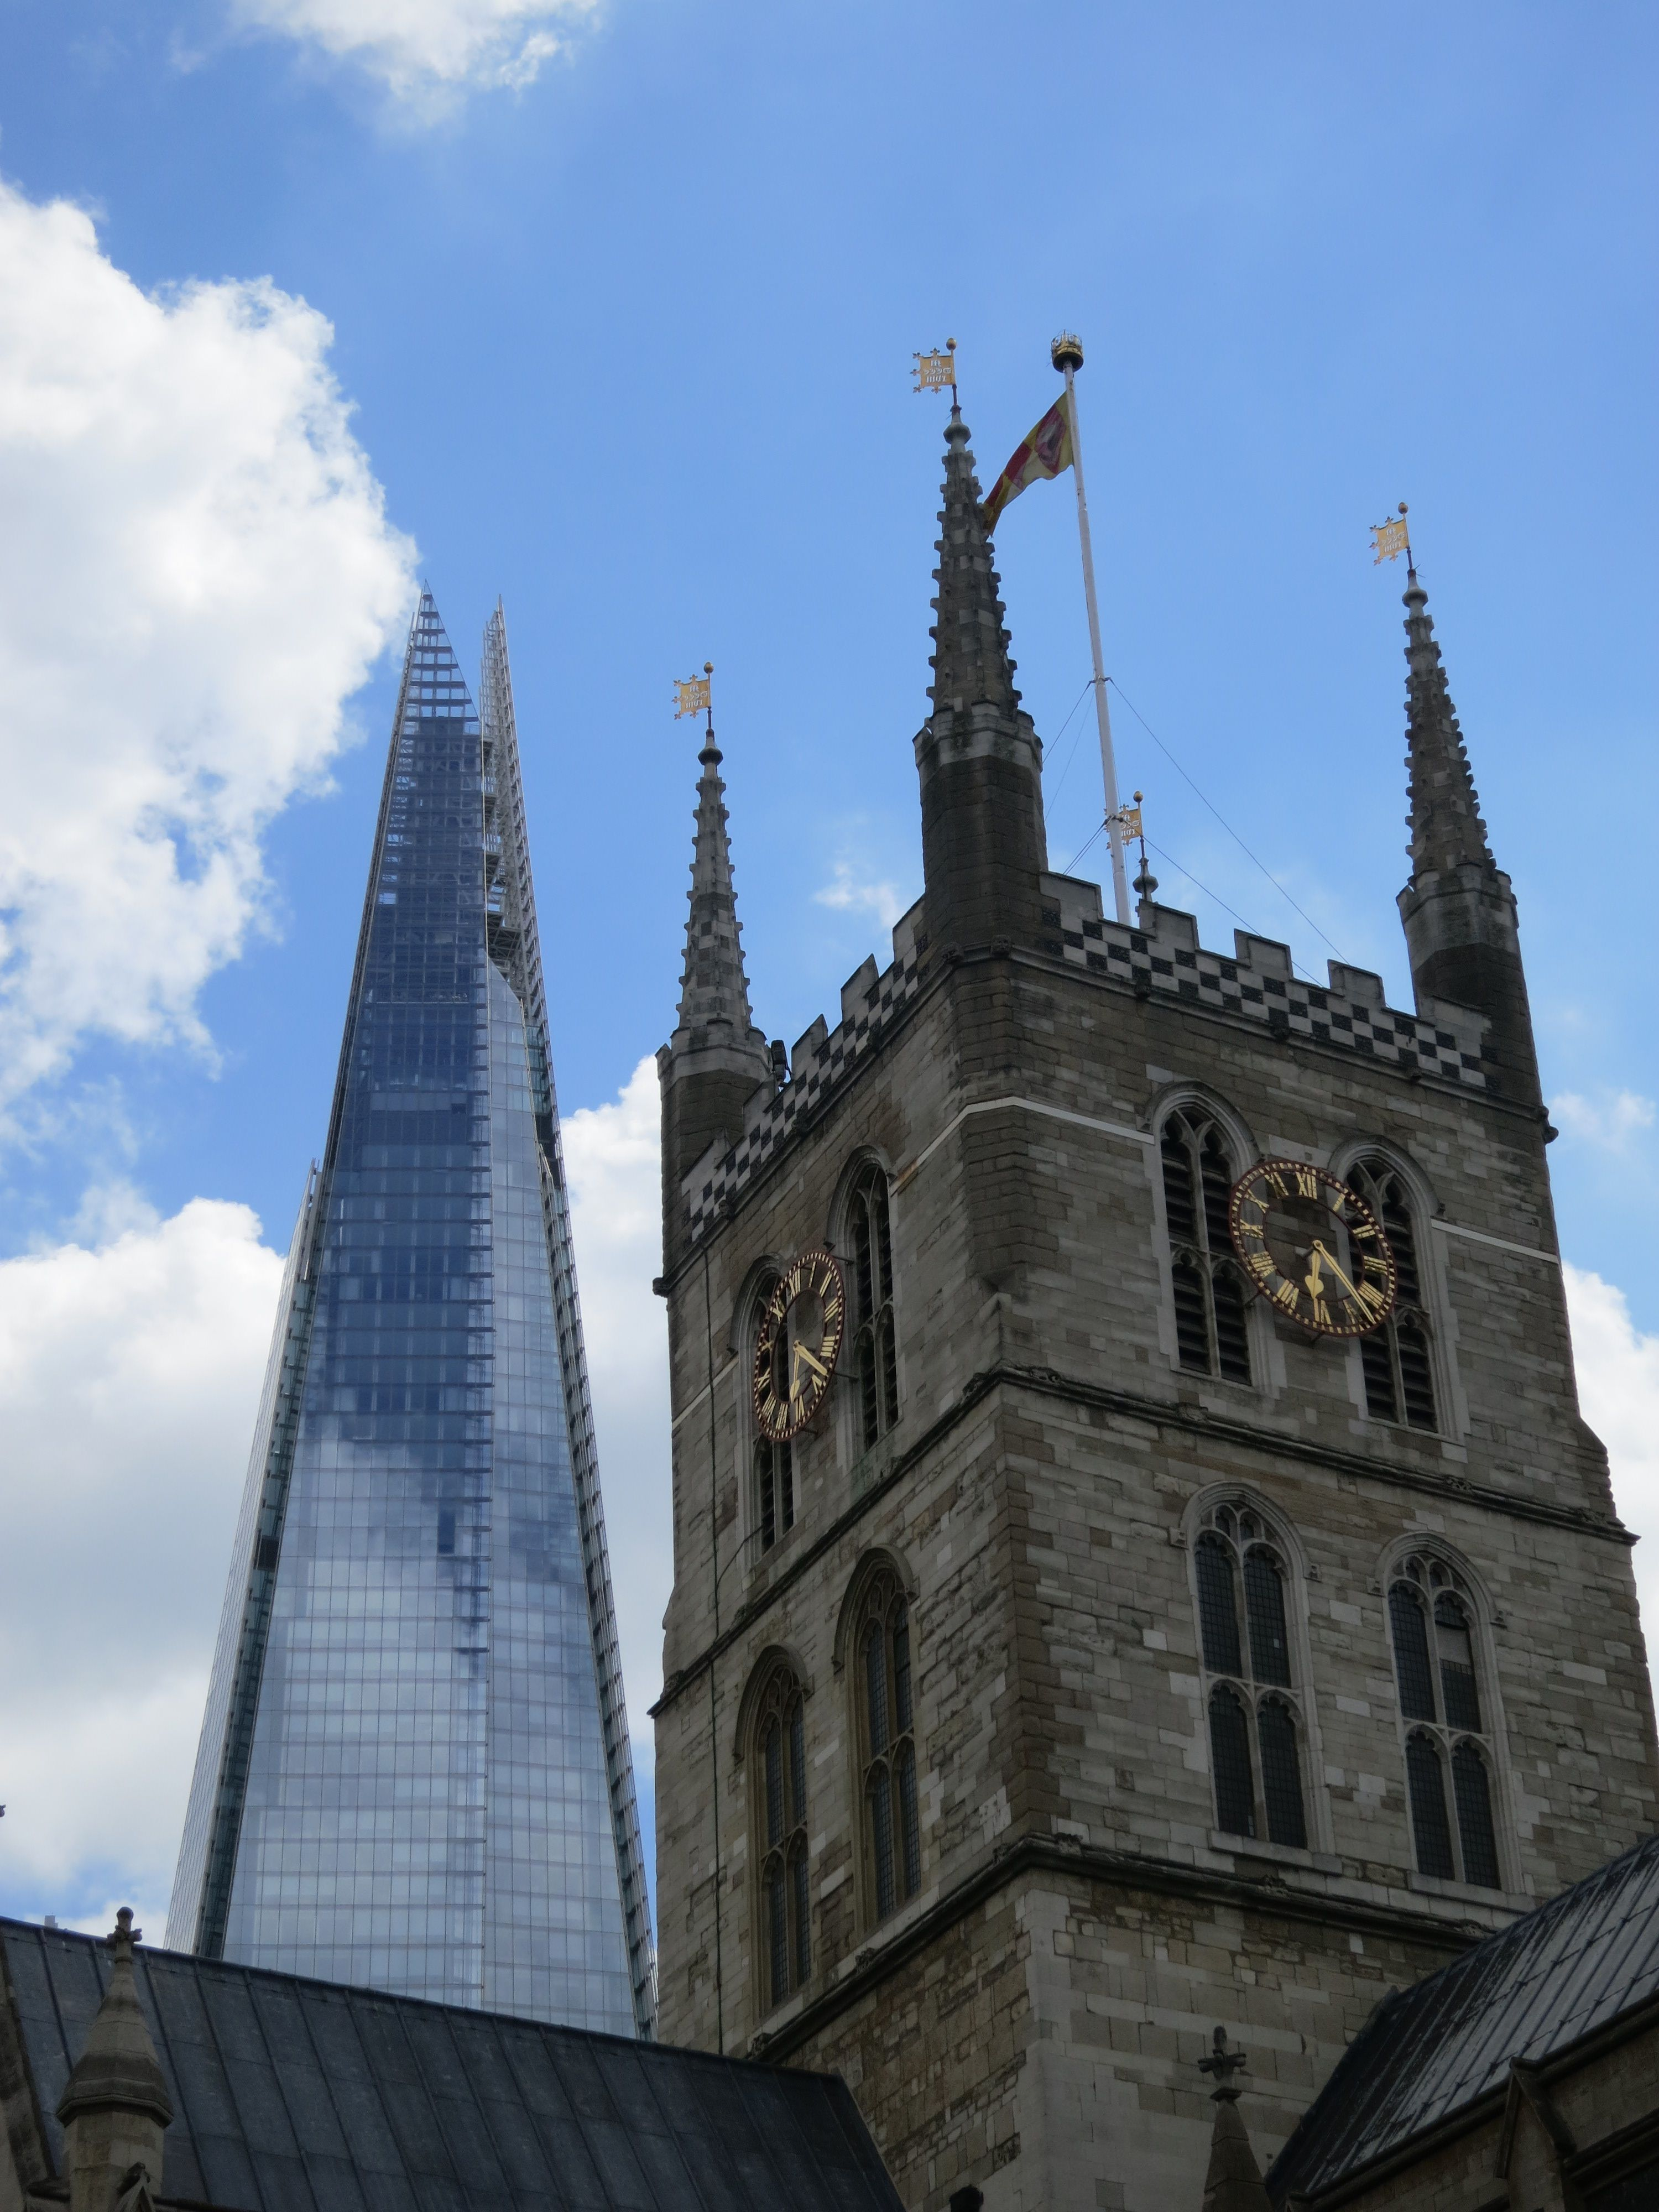 #Southwark #Cathedral and the #Shard #London